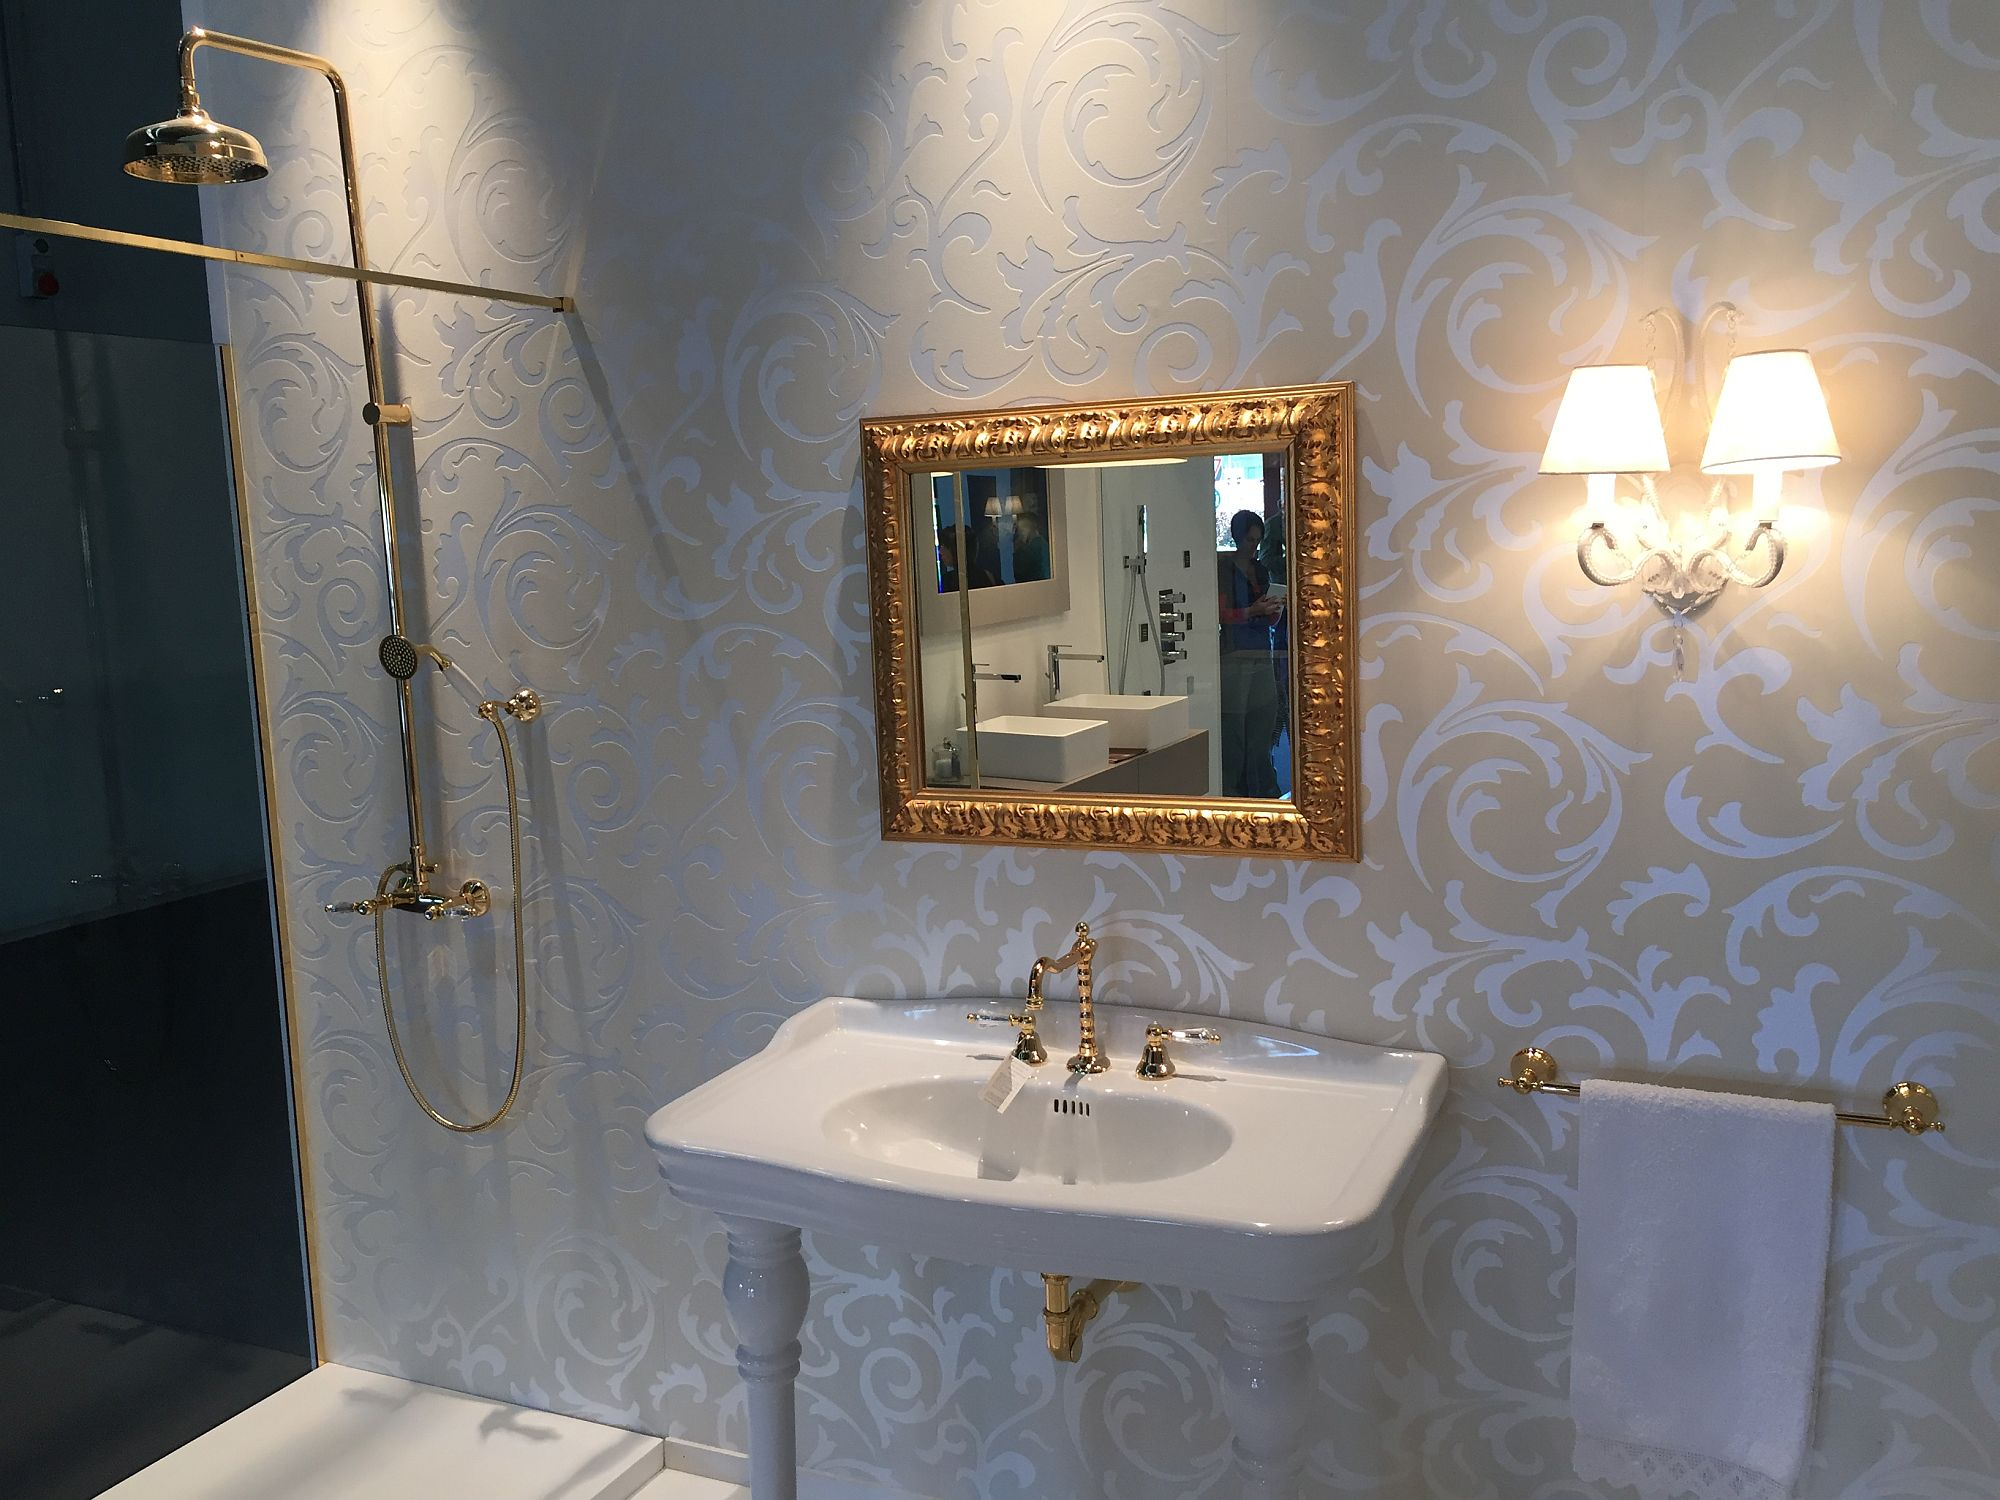 Mirror-frame-from-Fiore-Rubinetterie-brings-art-decot-style-to-the-bathroom